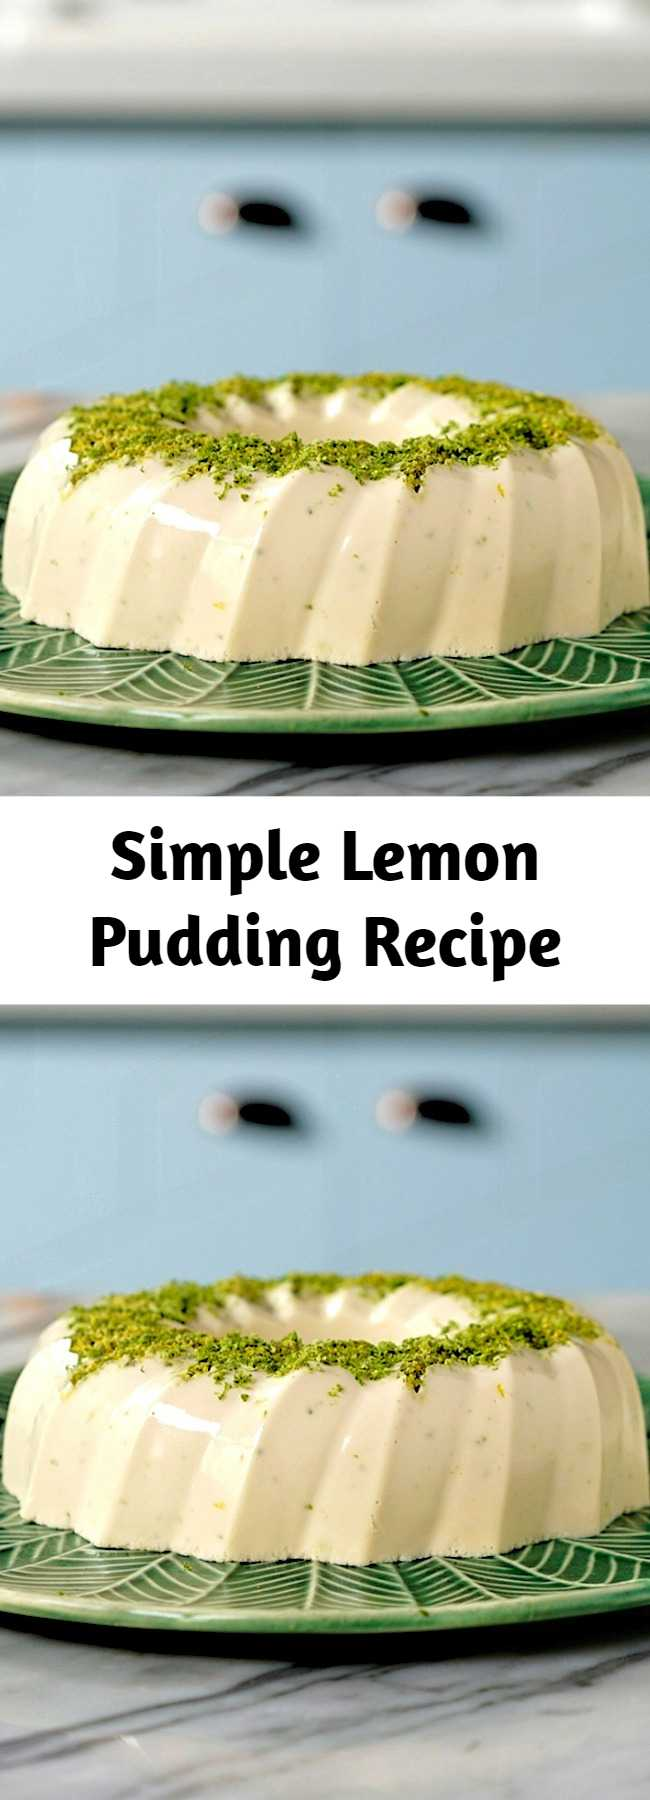 Simple Lemon Pudding Recipe